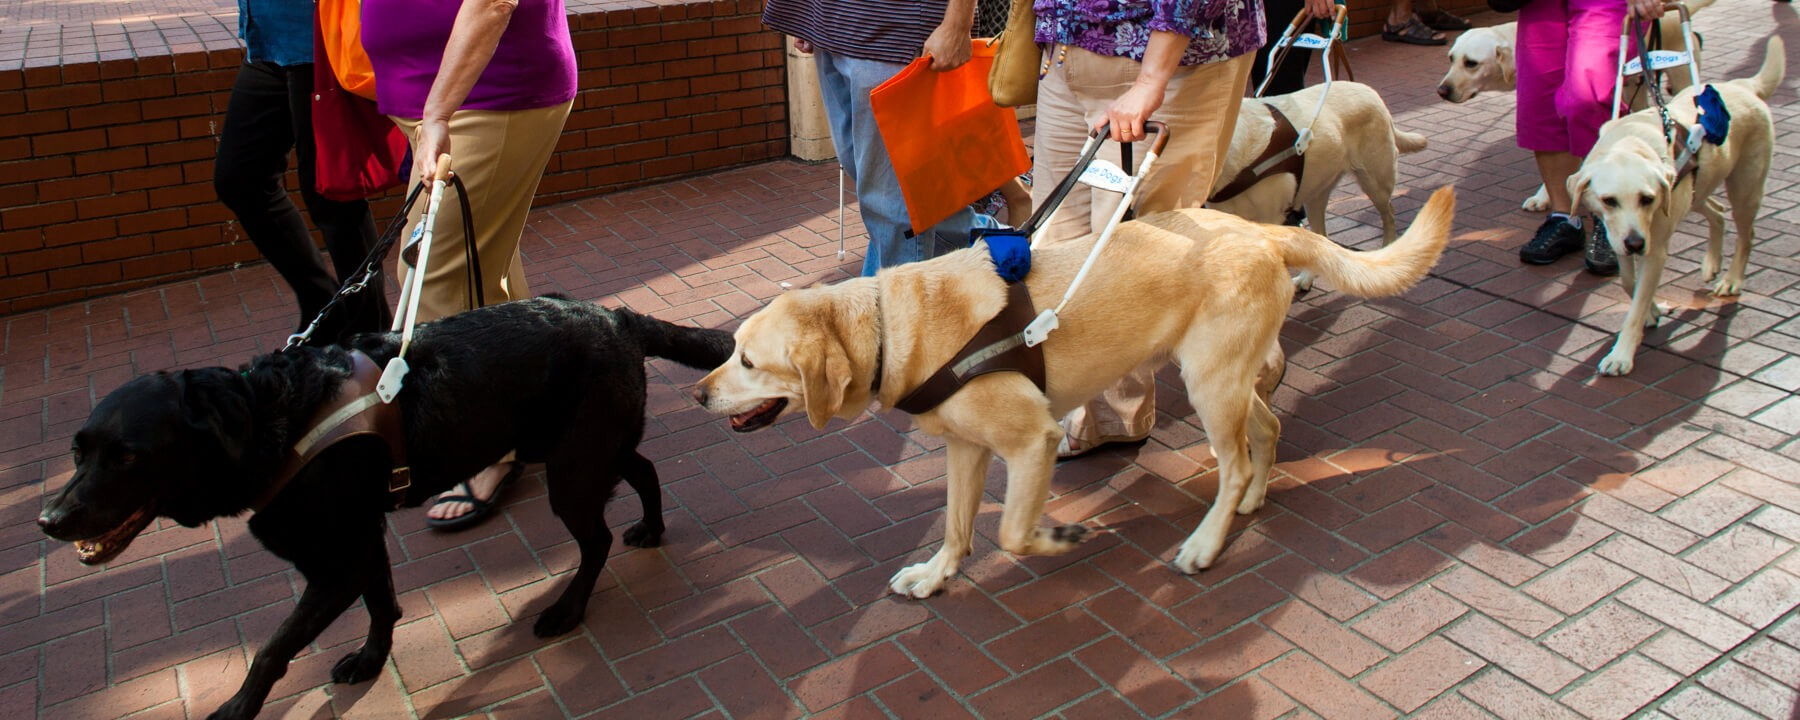 A sidewalk full of working guide dogs and their handlers.